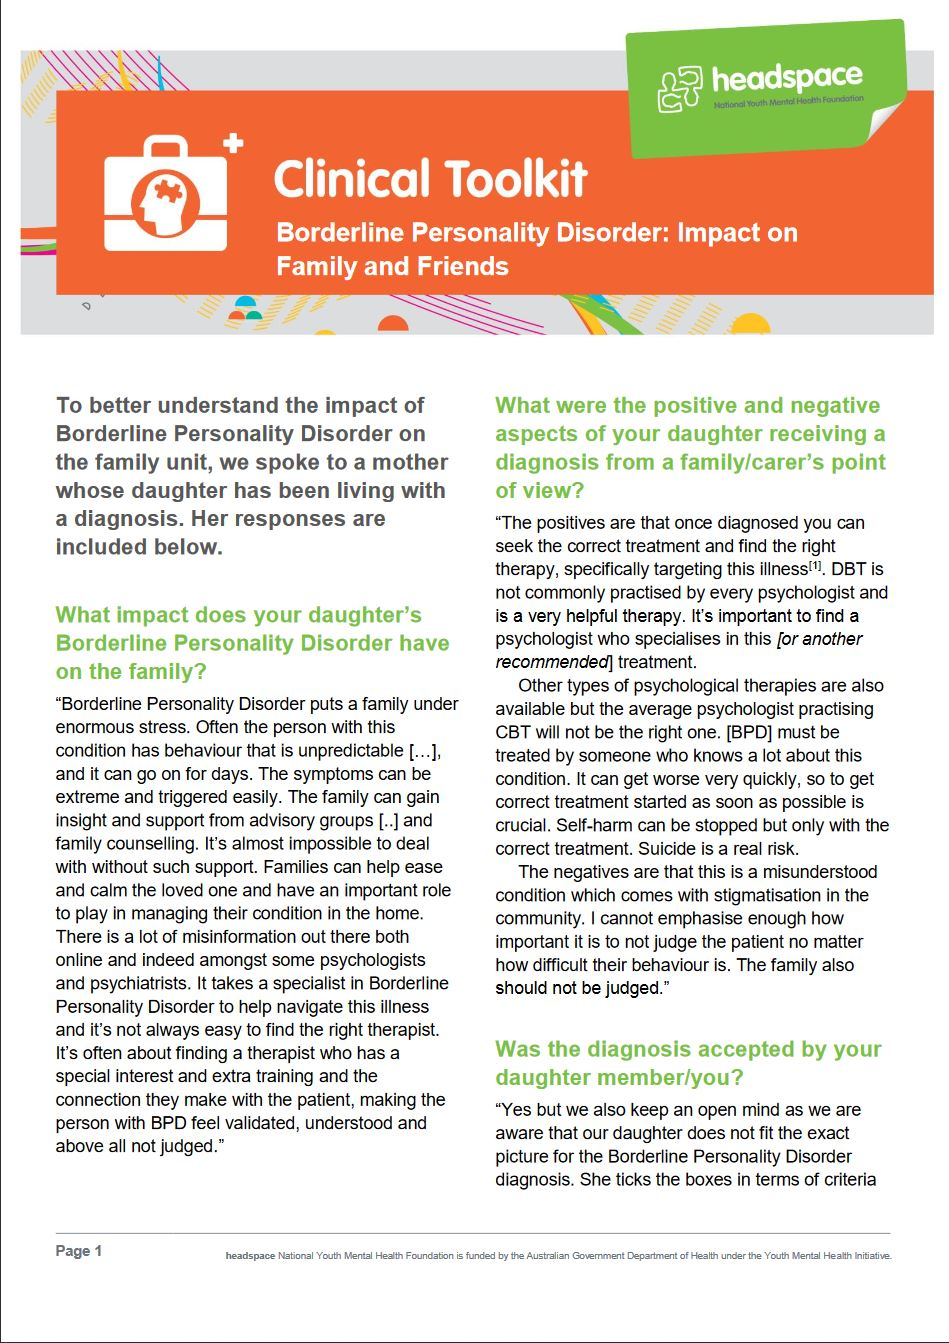 Image Headspace Clinical Toolkit Carers